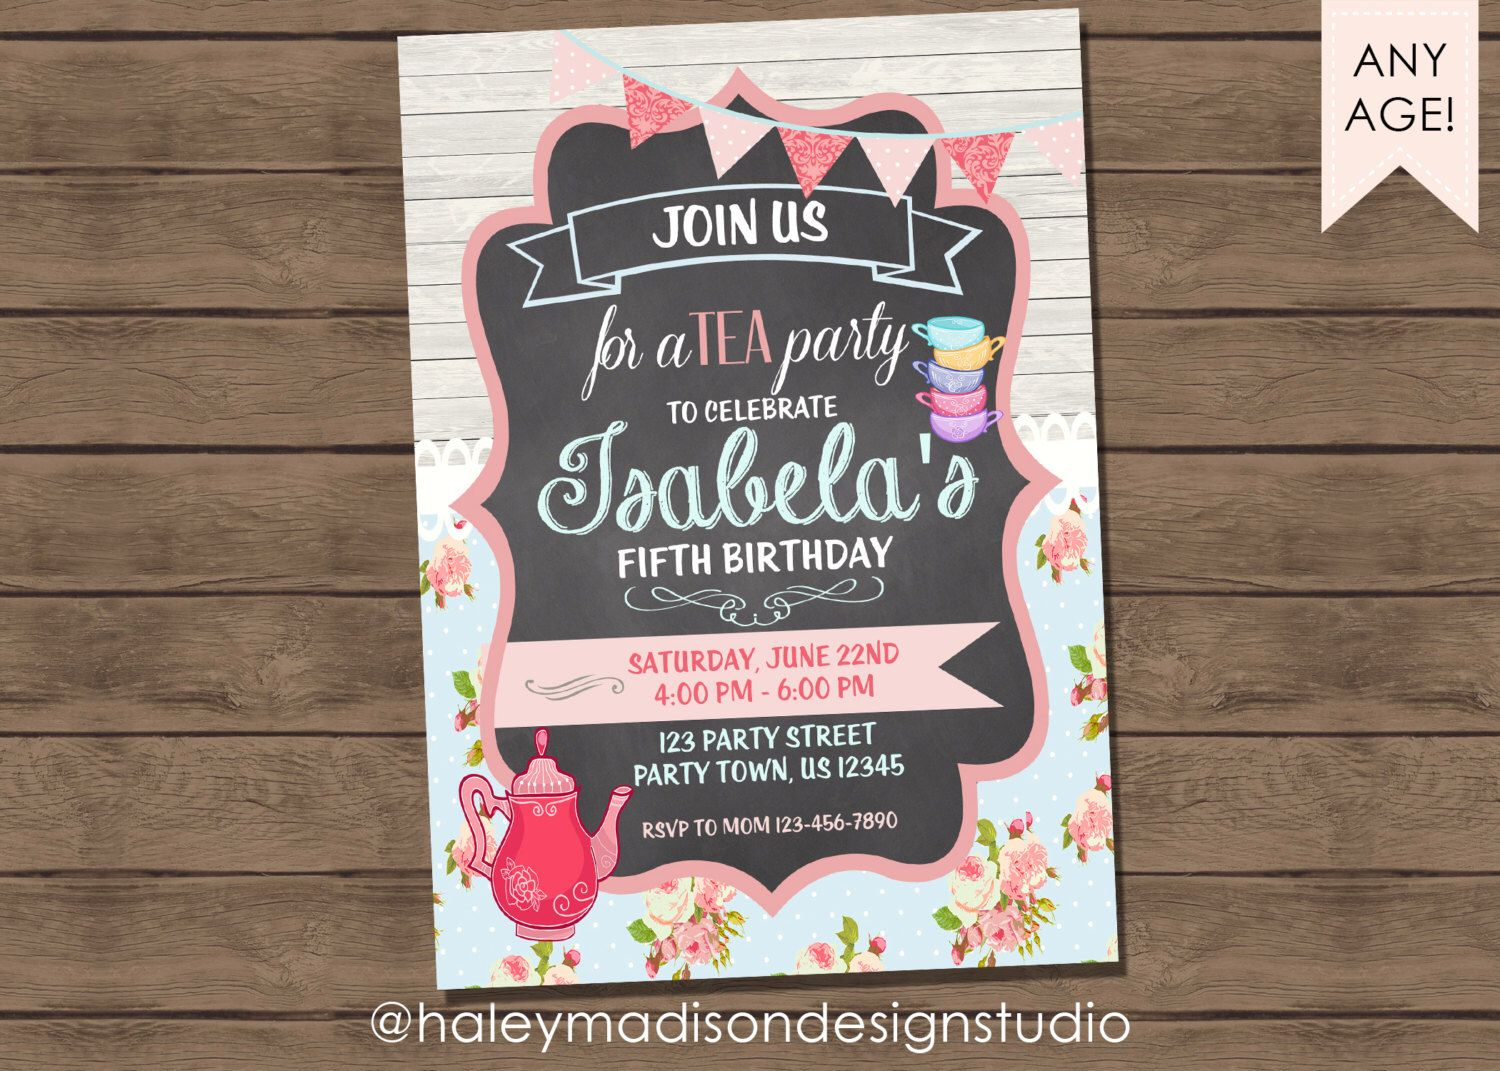 mad hatter teparty invitations pinterest%0A Birthday party ideas